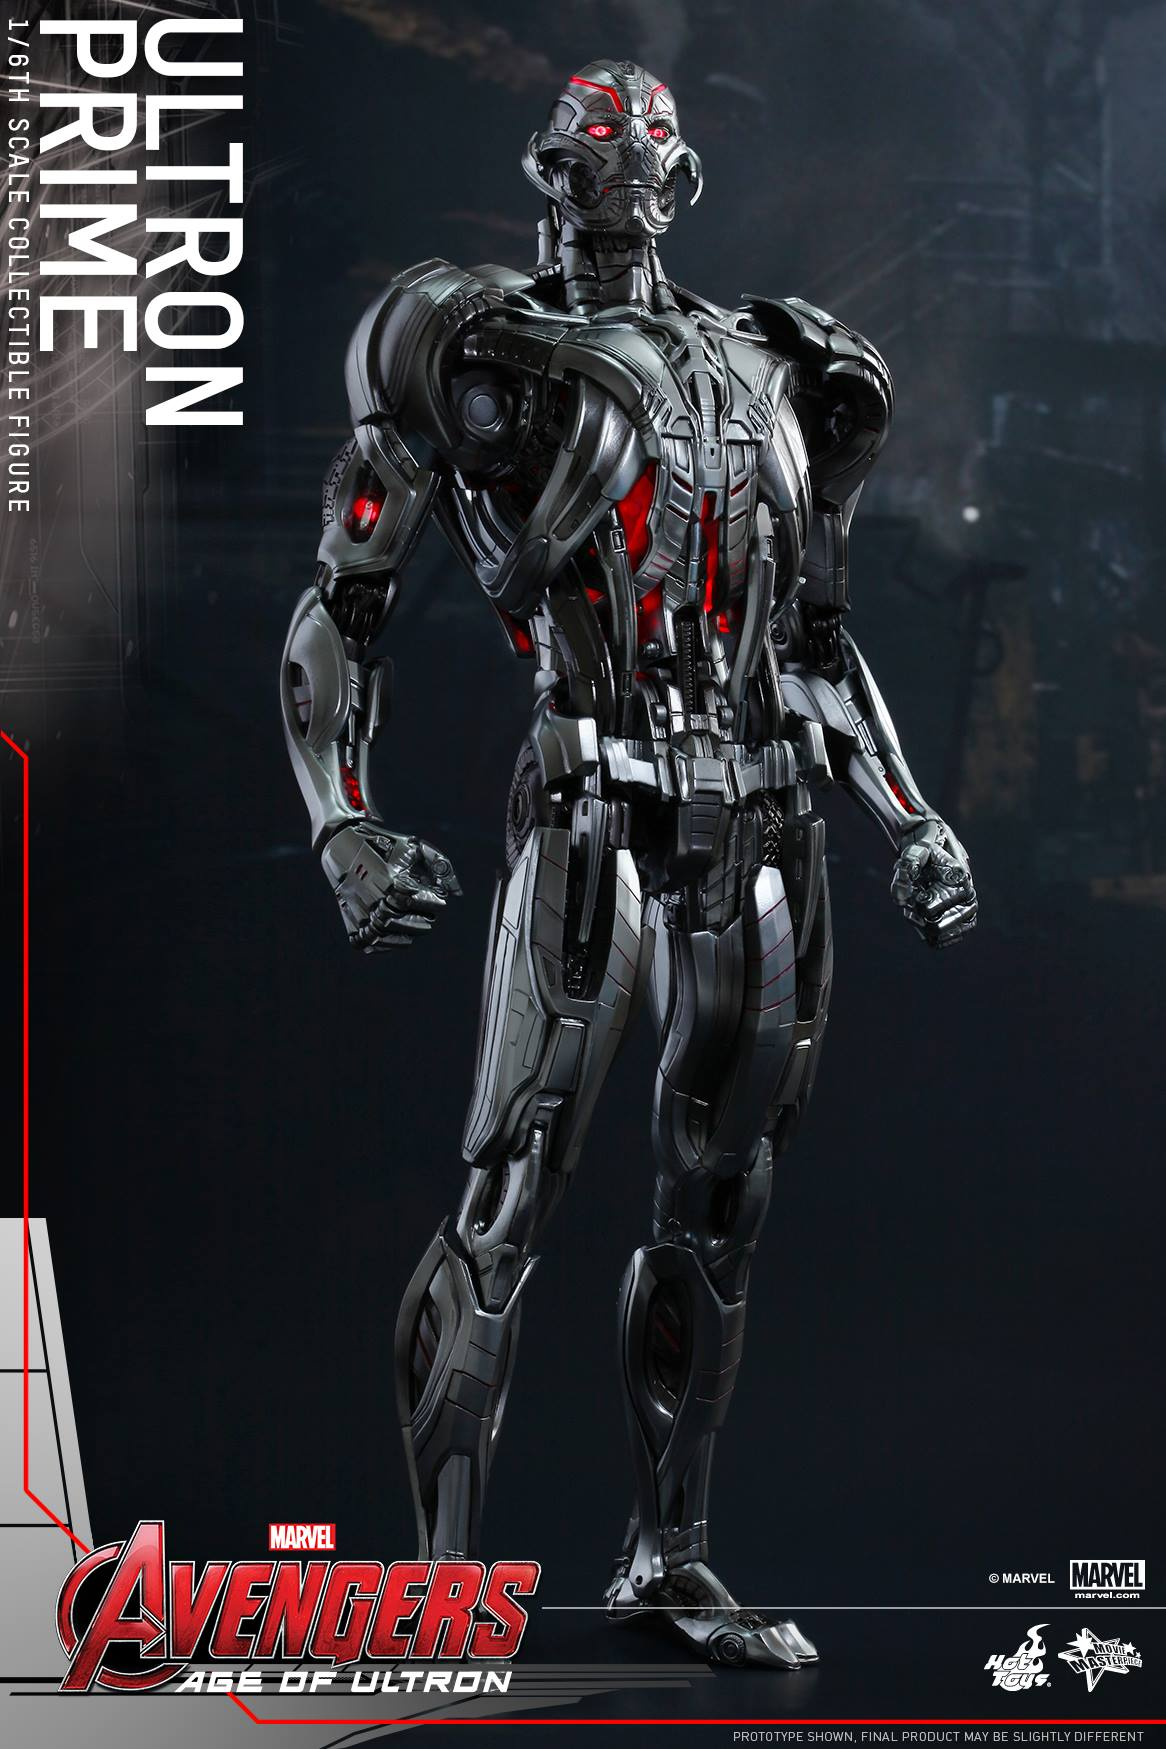 Marvel Releases New Avengers Age Of Ultron Pictures |Ultron Avengers Age Of Ultron